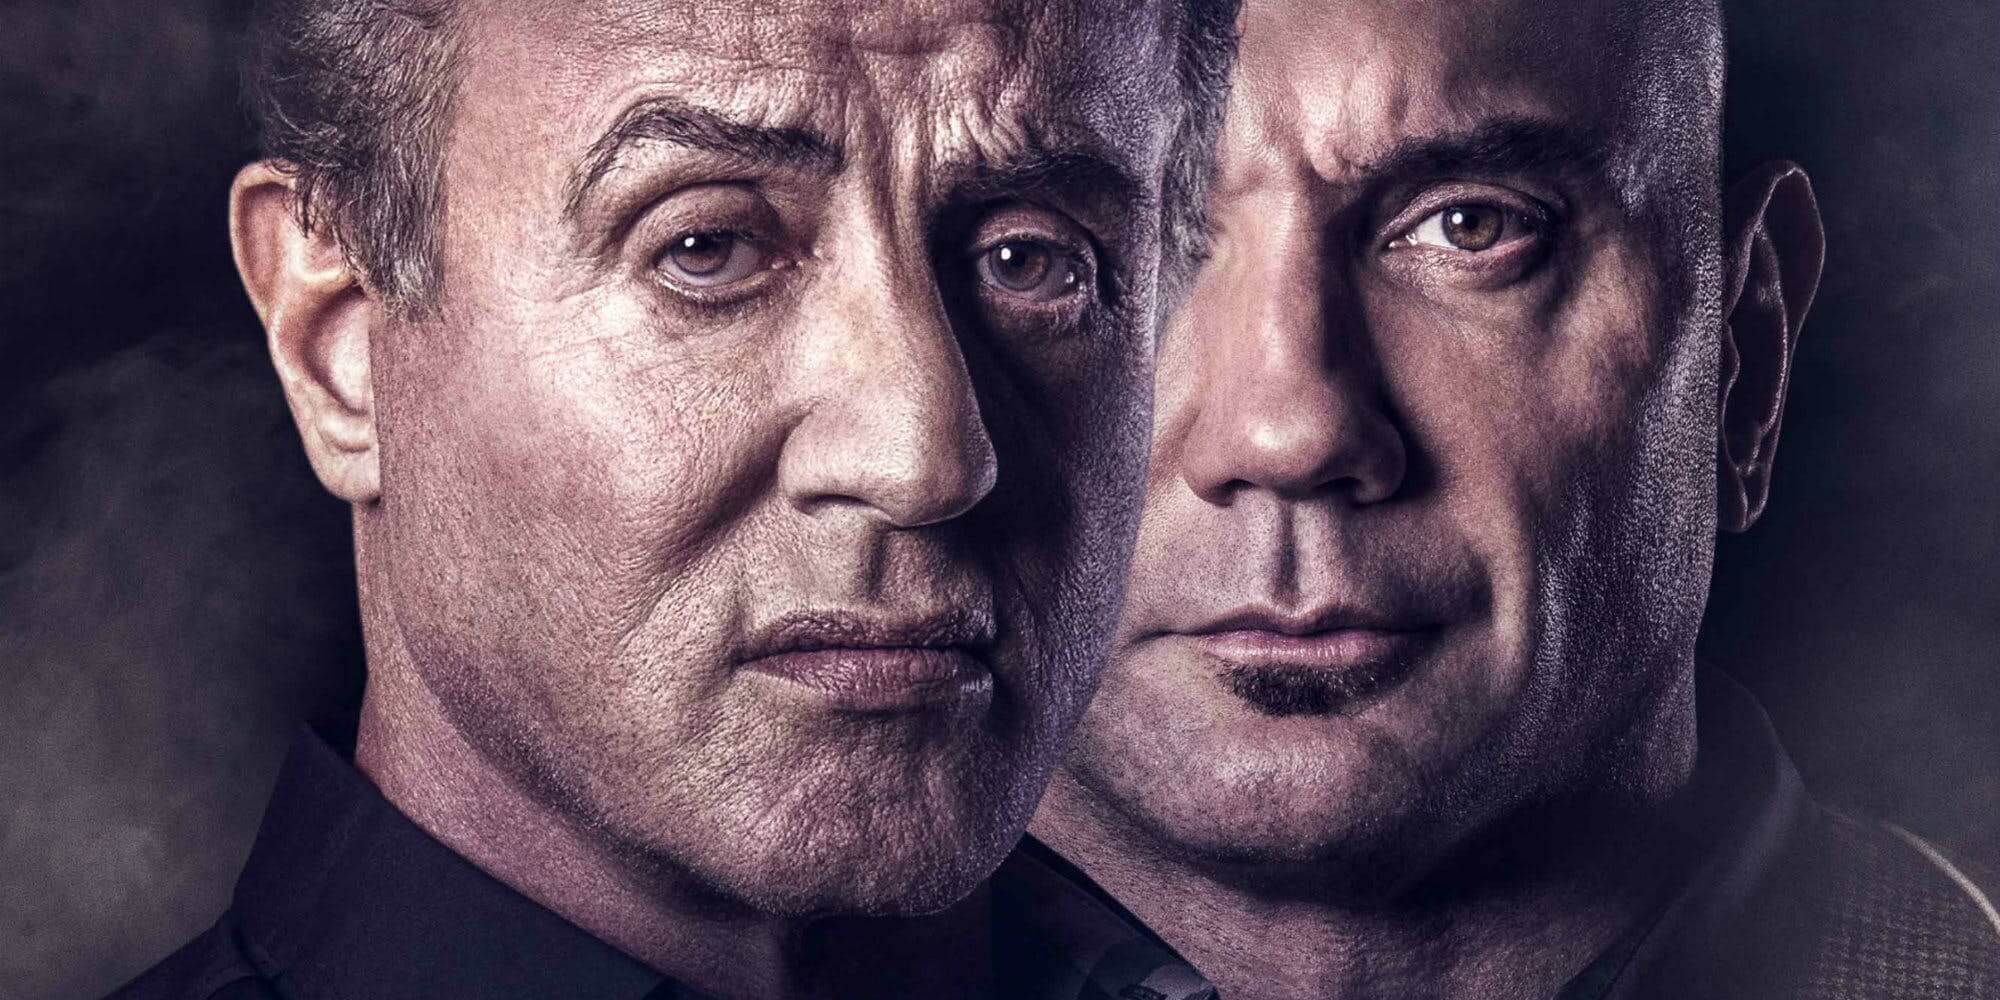 Sylvester-Stallone-and-Dave-Bautista-in-Escape-Plan-2-poster